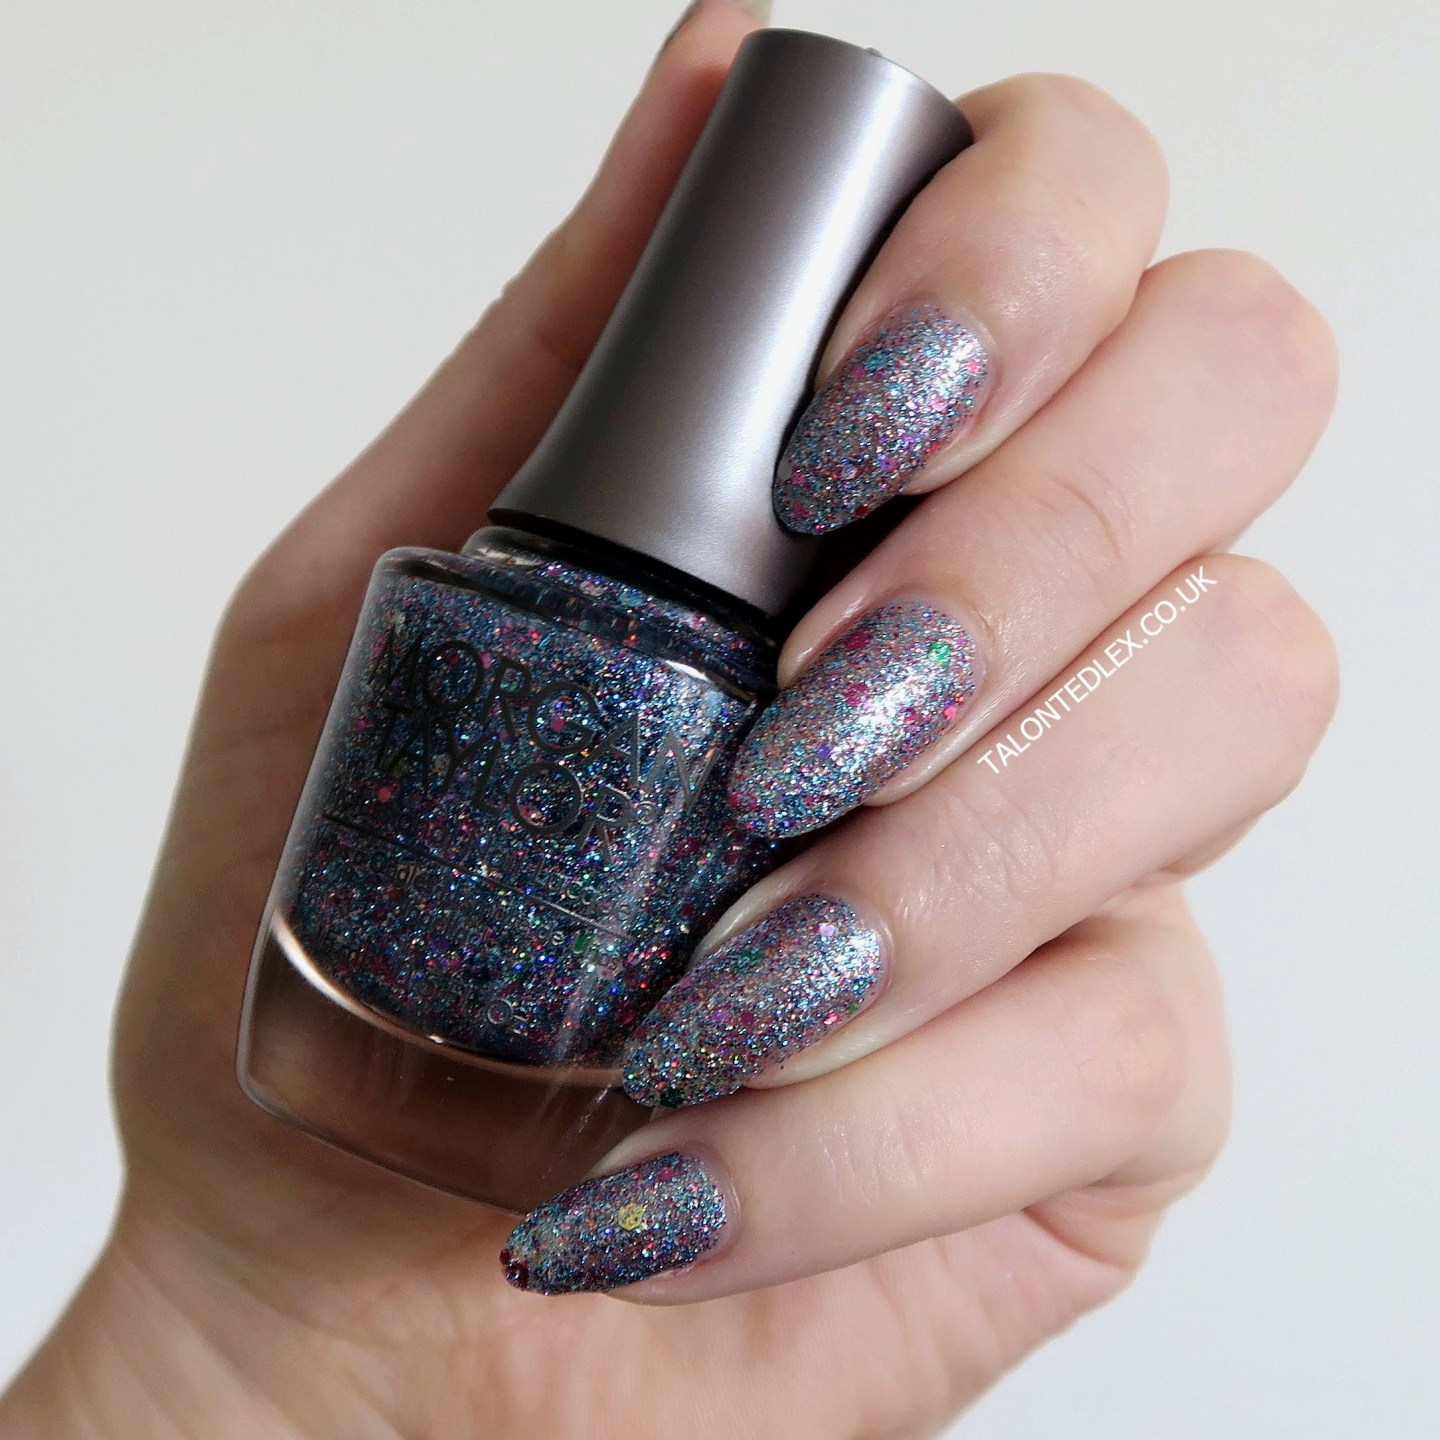 Repin and click to see the full Morgan Taylor Rocketman collection, including 'Bedazzle Me' - a beautiful glitter top coat. New Morgan Taylor nail polish range. #talontedlex #morgantaylor #glitternails